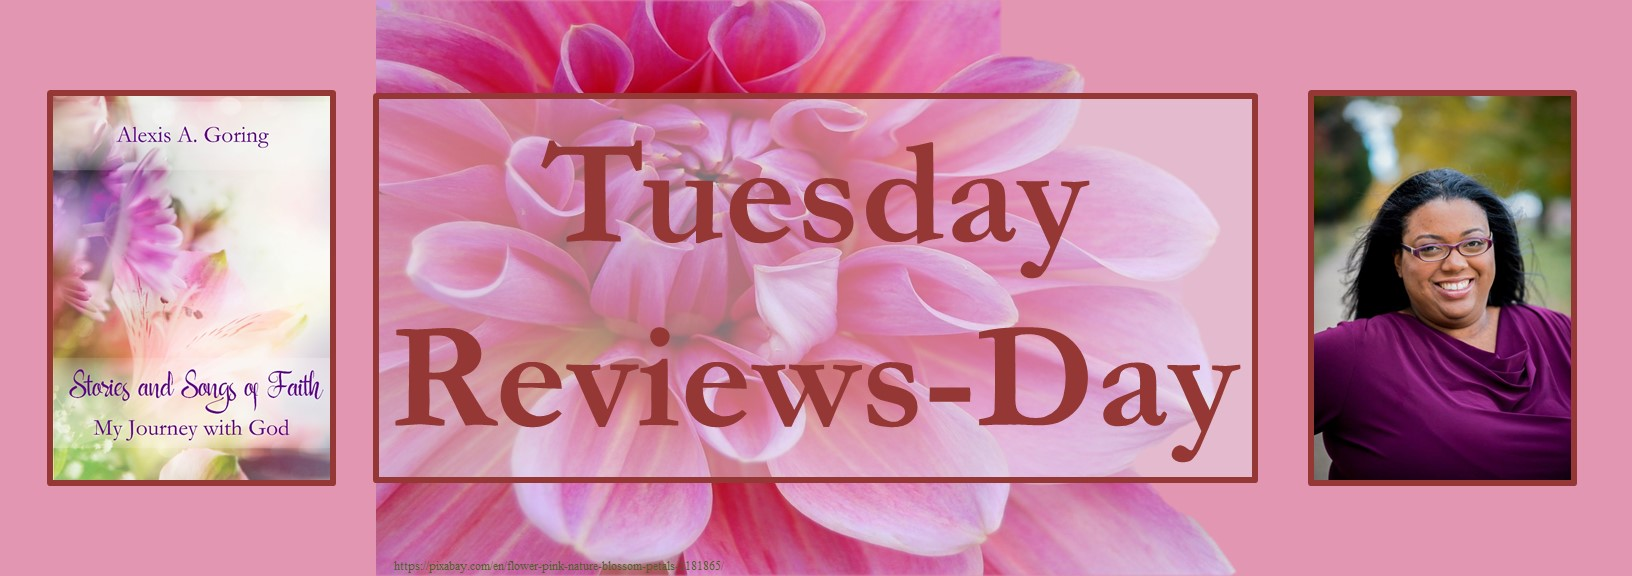 113020 - stories & songs of faith - tuesday reviews day banner